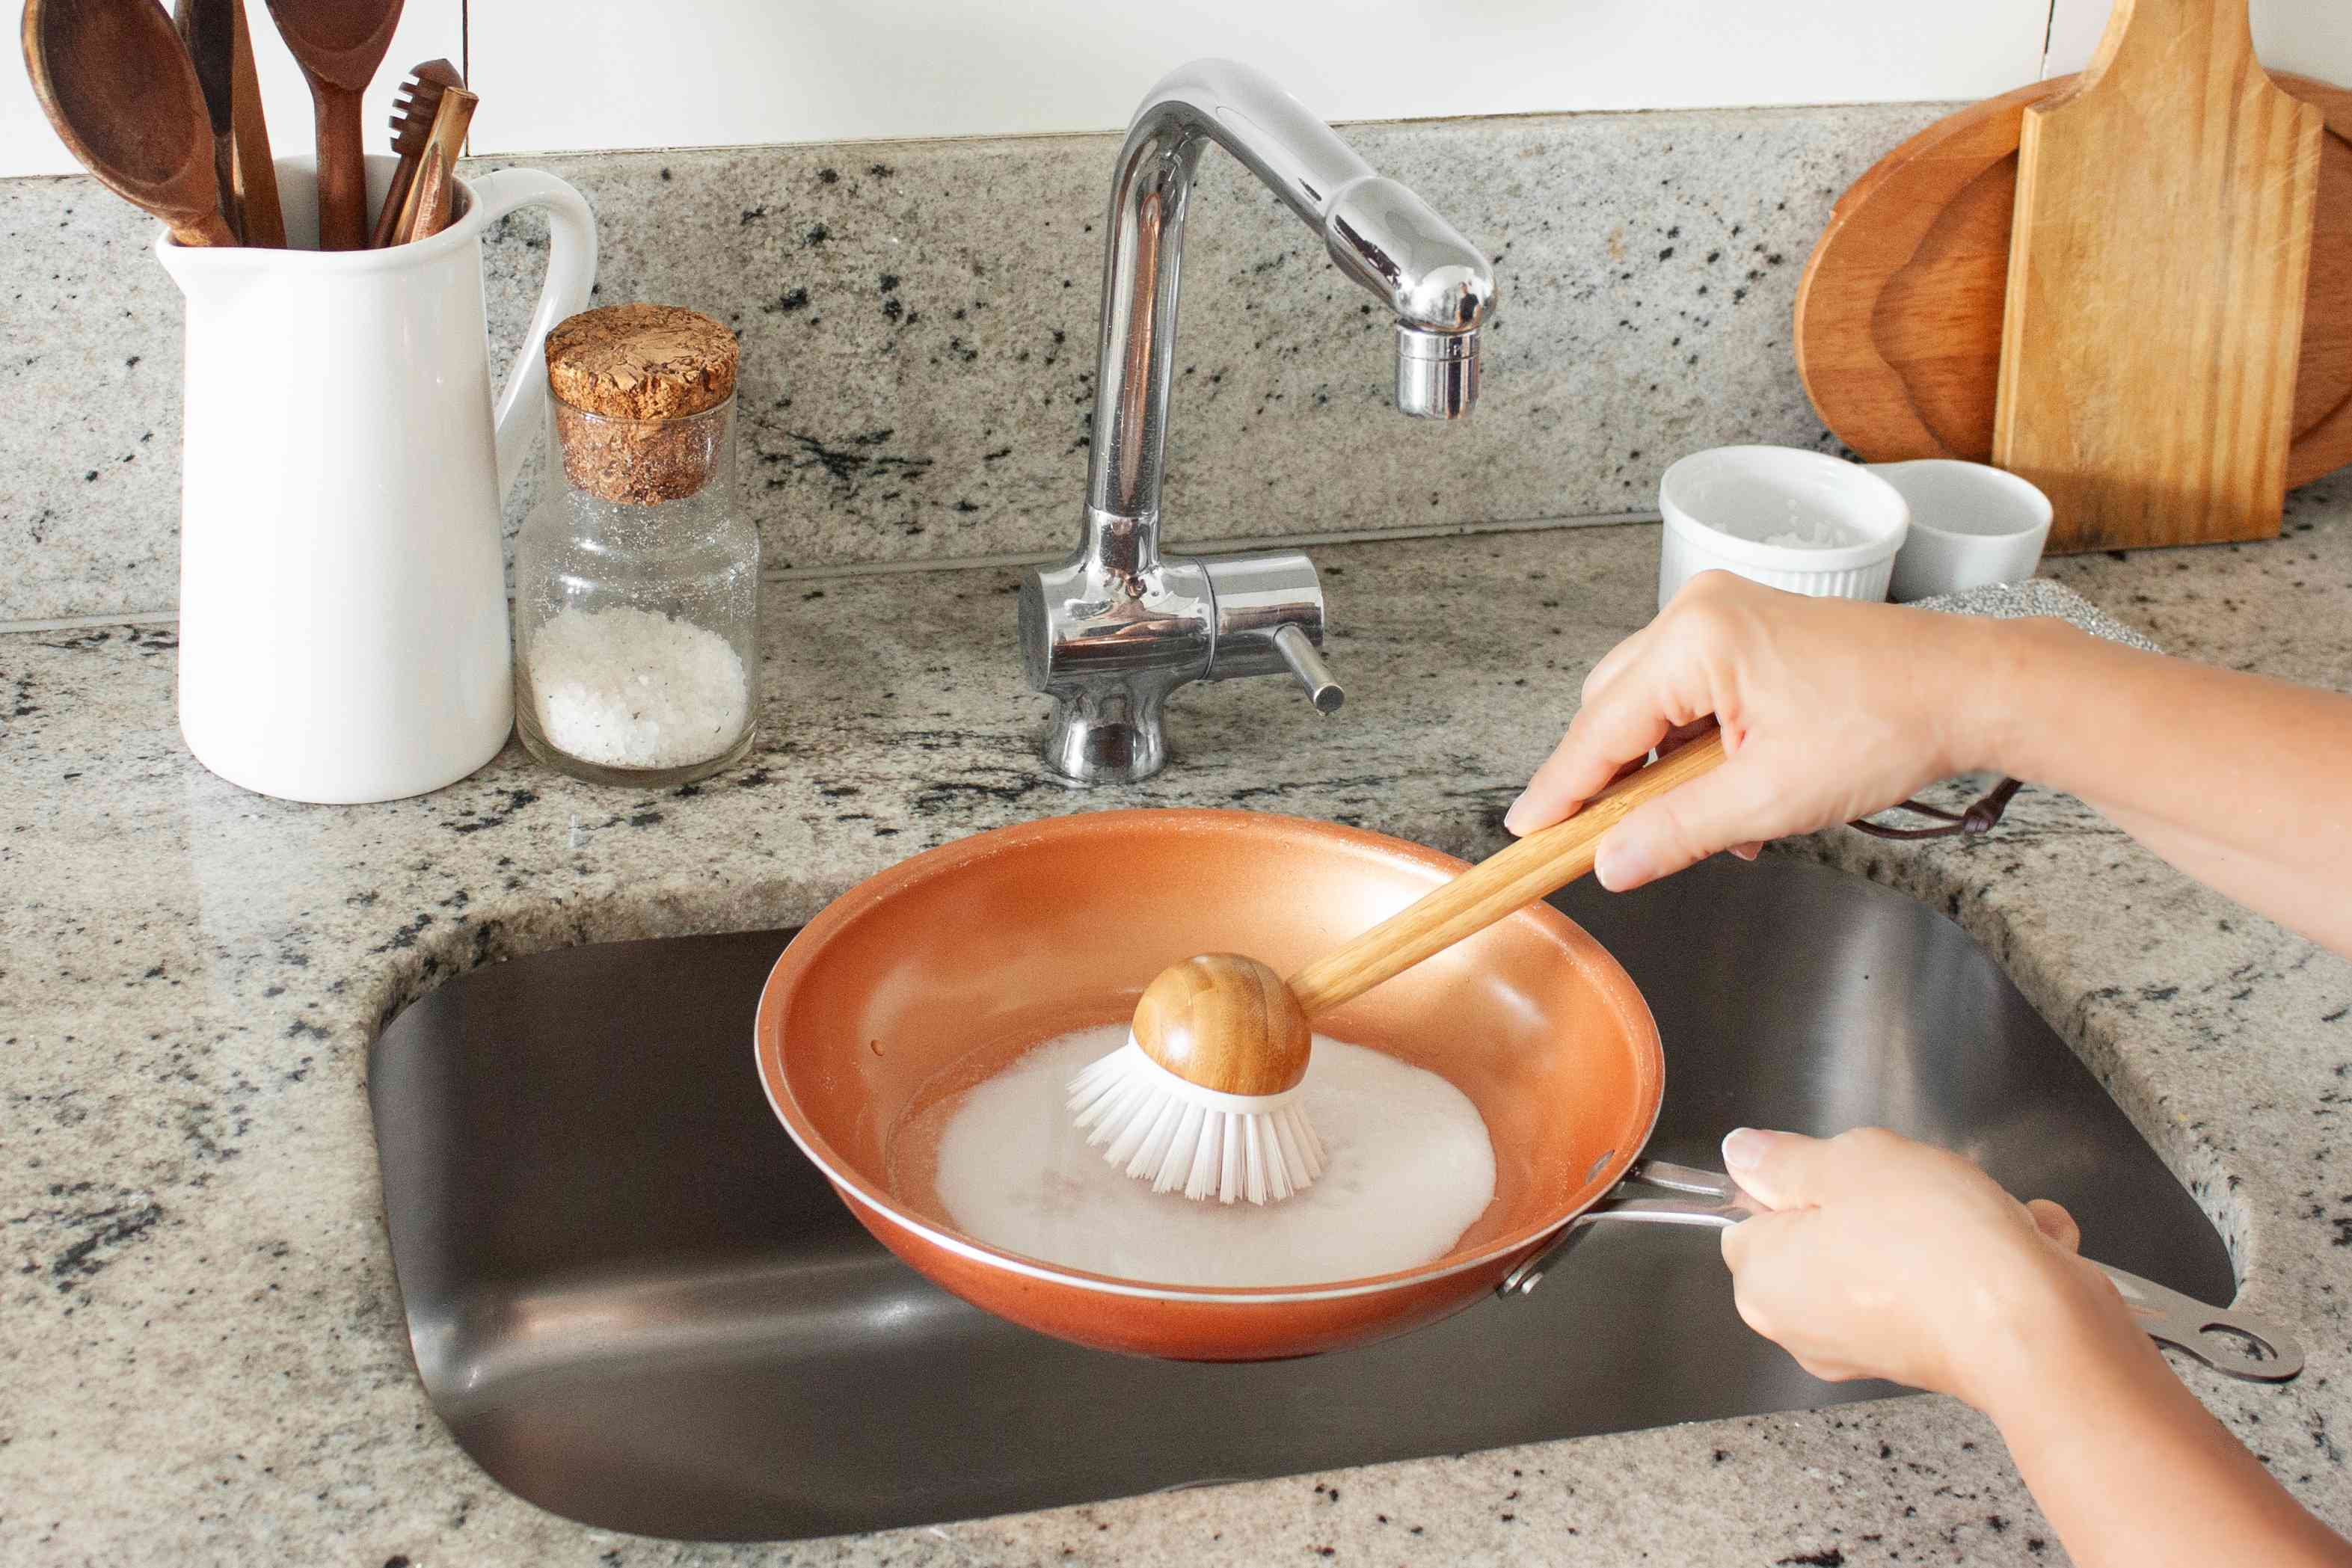 scrubbing the inside of the pan with a nylon bristle brush